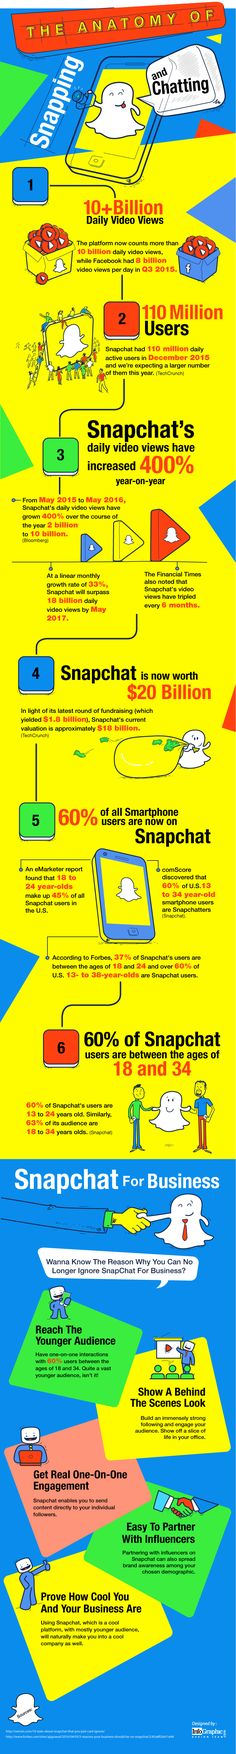 The Anatomy of How Snapchat Grew to 10 Billion Video Views [Infographic] - @b2community